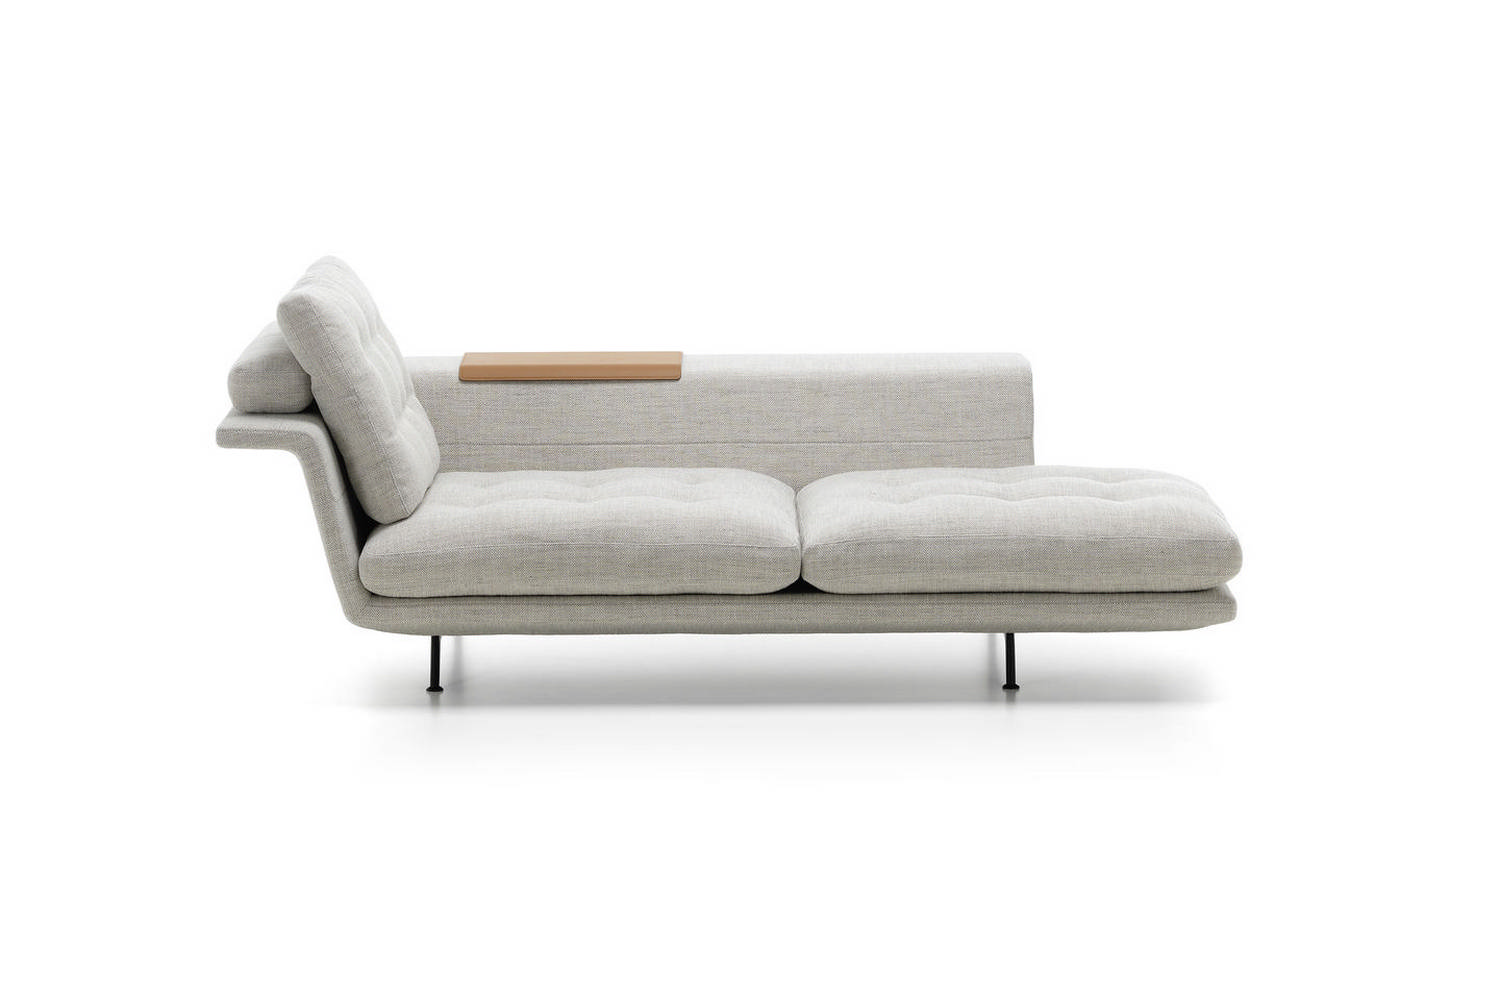 grand sofa tan leather set chaise longue by antonio citterio for vitra